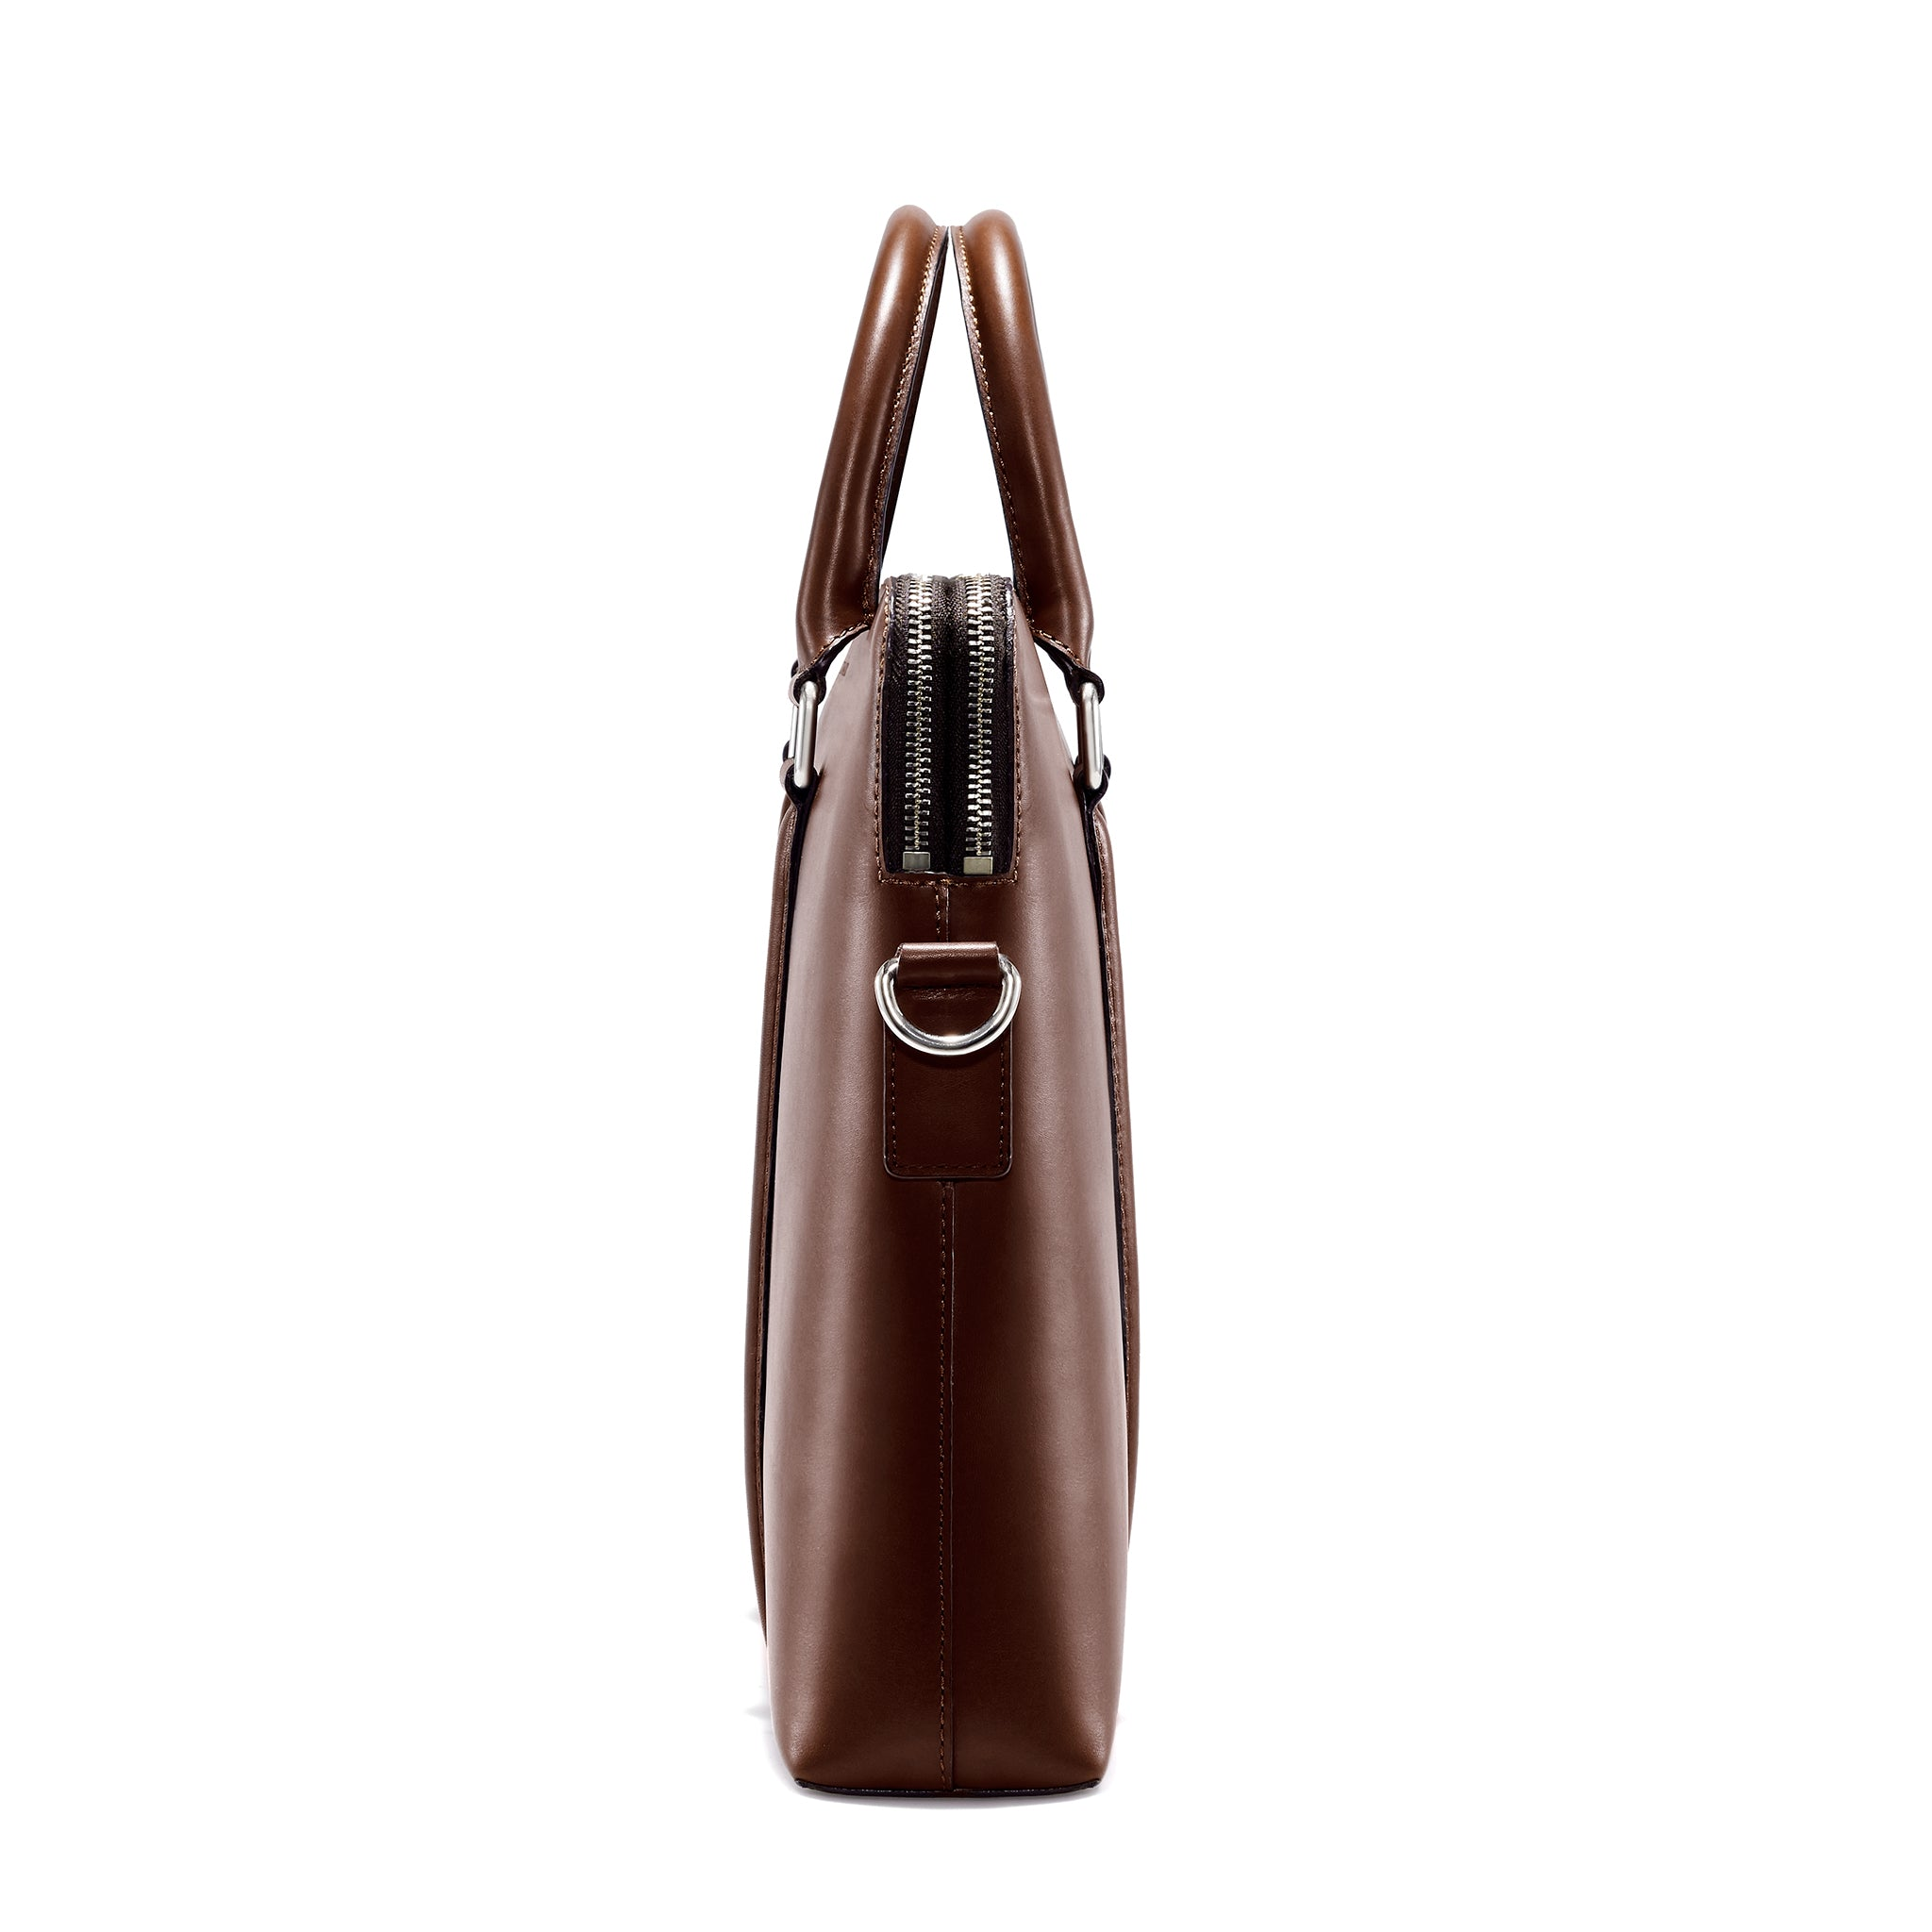 CLASSY BRIEFCASE BROWN NATURAL BEIGE